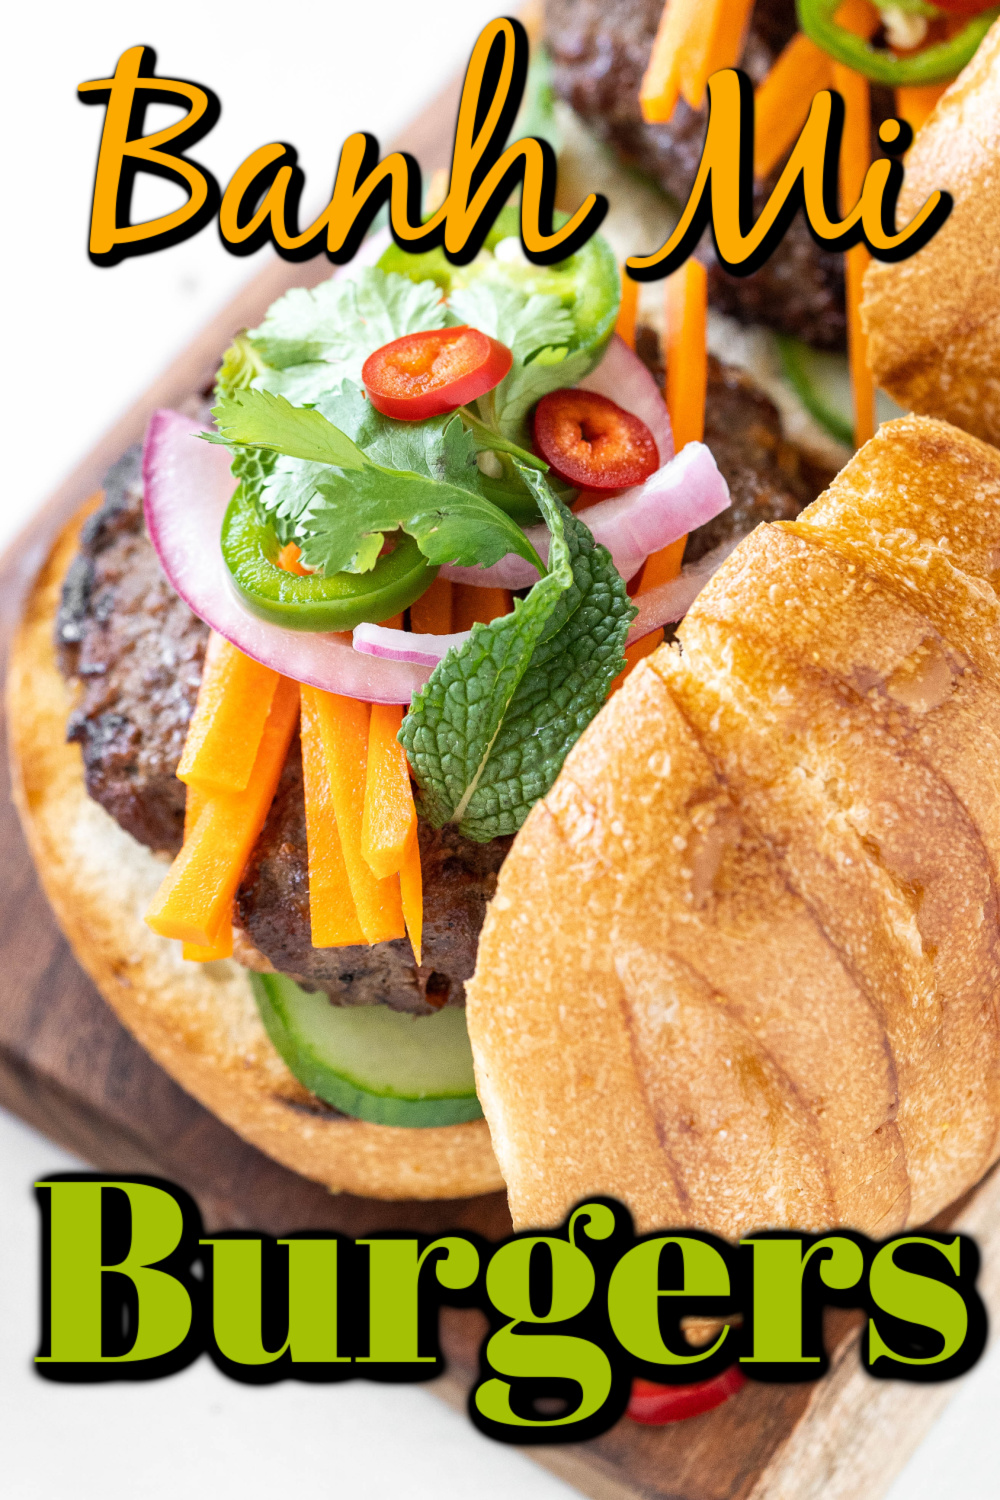 This Banh Mi Burger recipe is wonderfully flavorful with a hint of Asian flavors. I know you will love them!